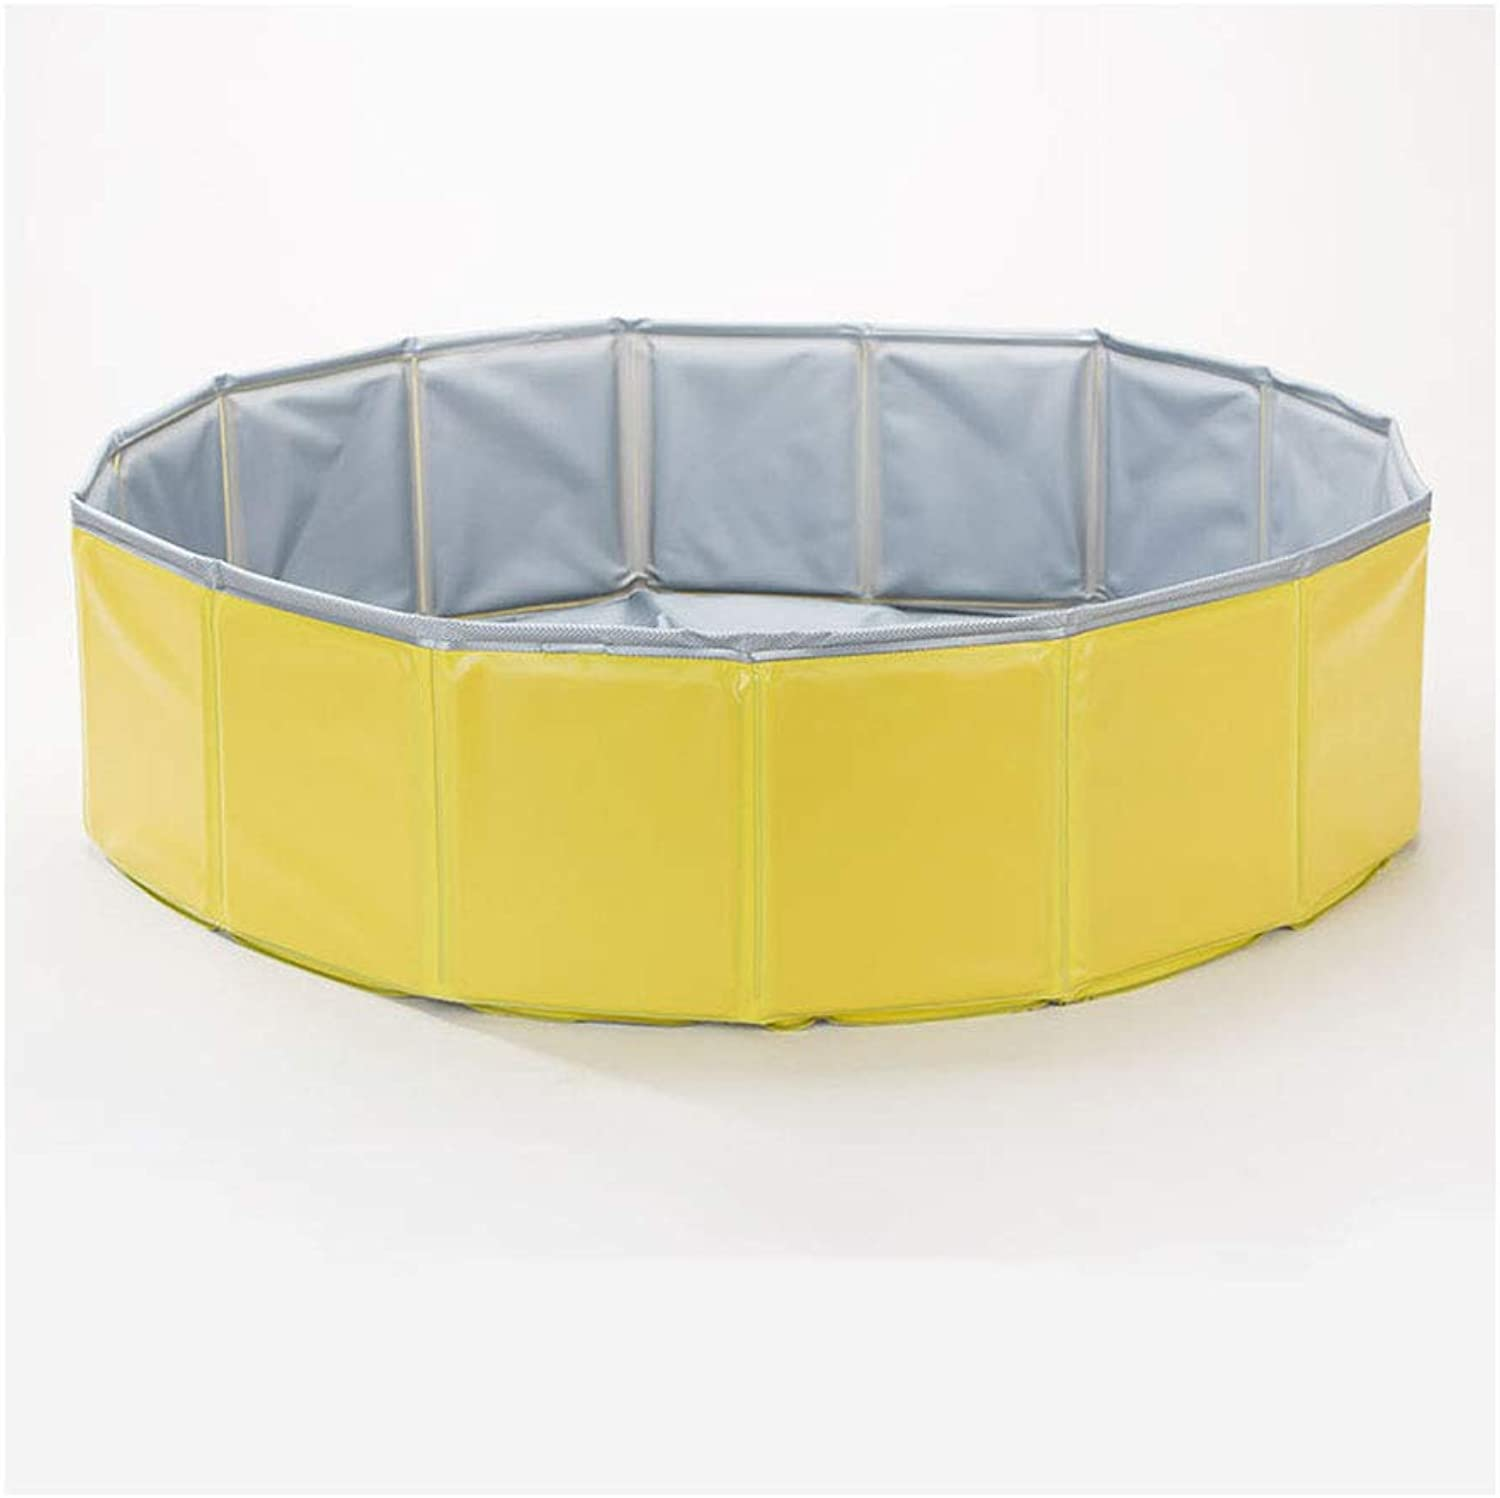 Collapsible Pet Bathtub,toys Pet Bathing Pool Collapsible Cat Bathing Pool Dog Bath Basin